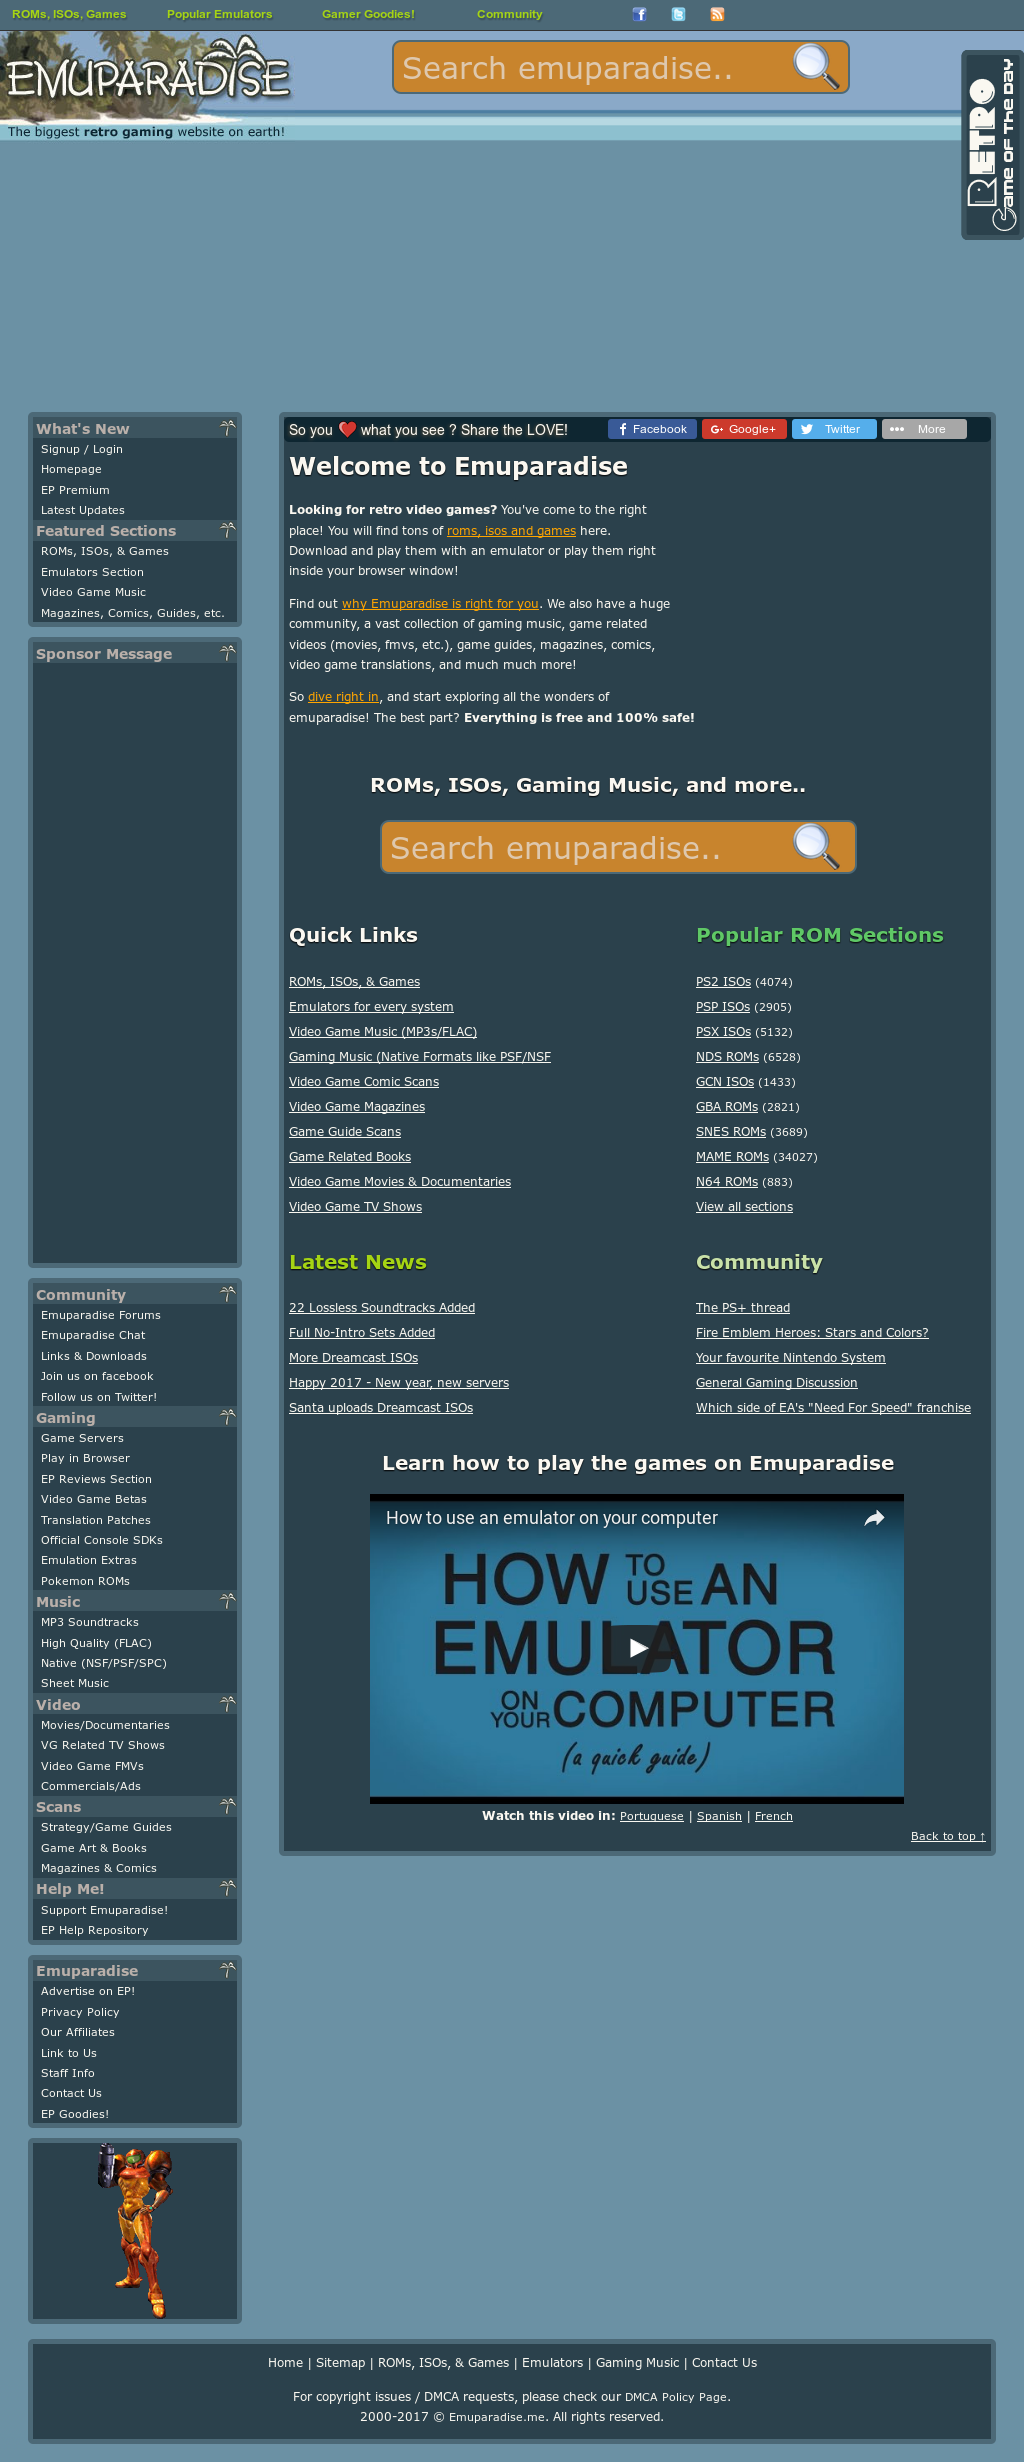 Emuparadise Competitors, Revenue and Employees - Owler